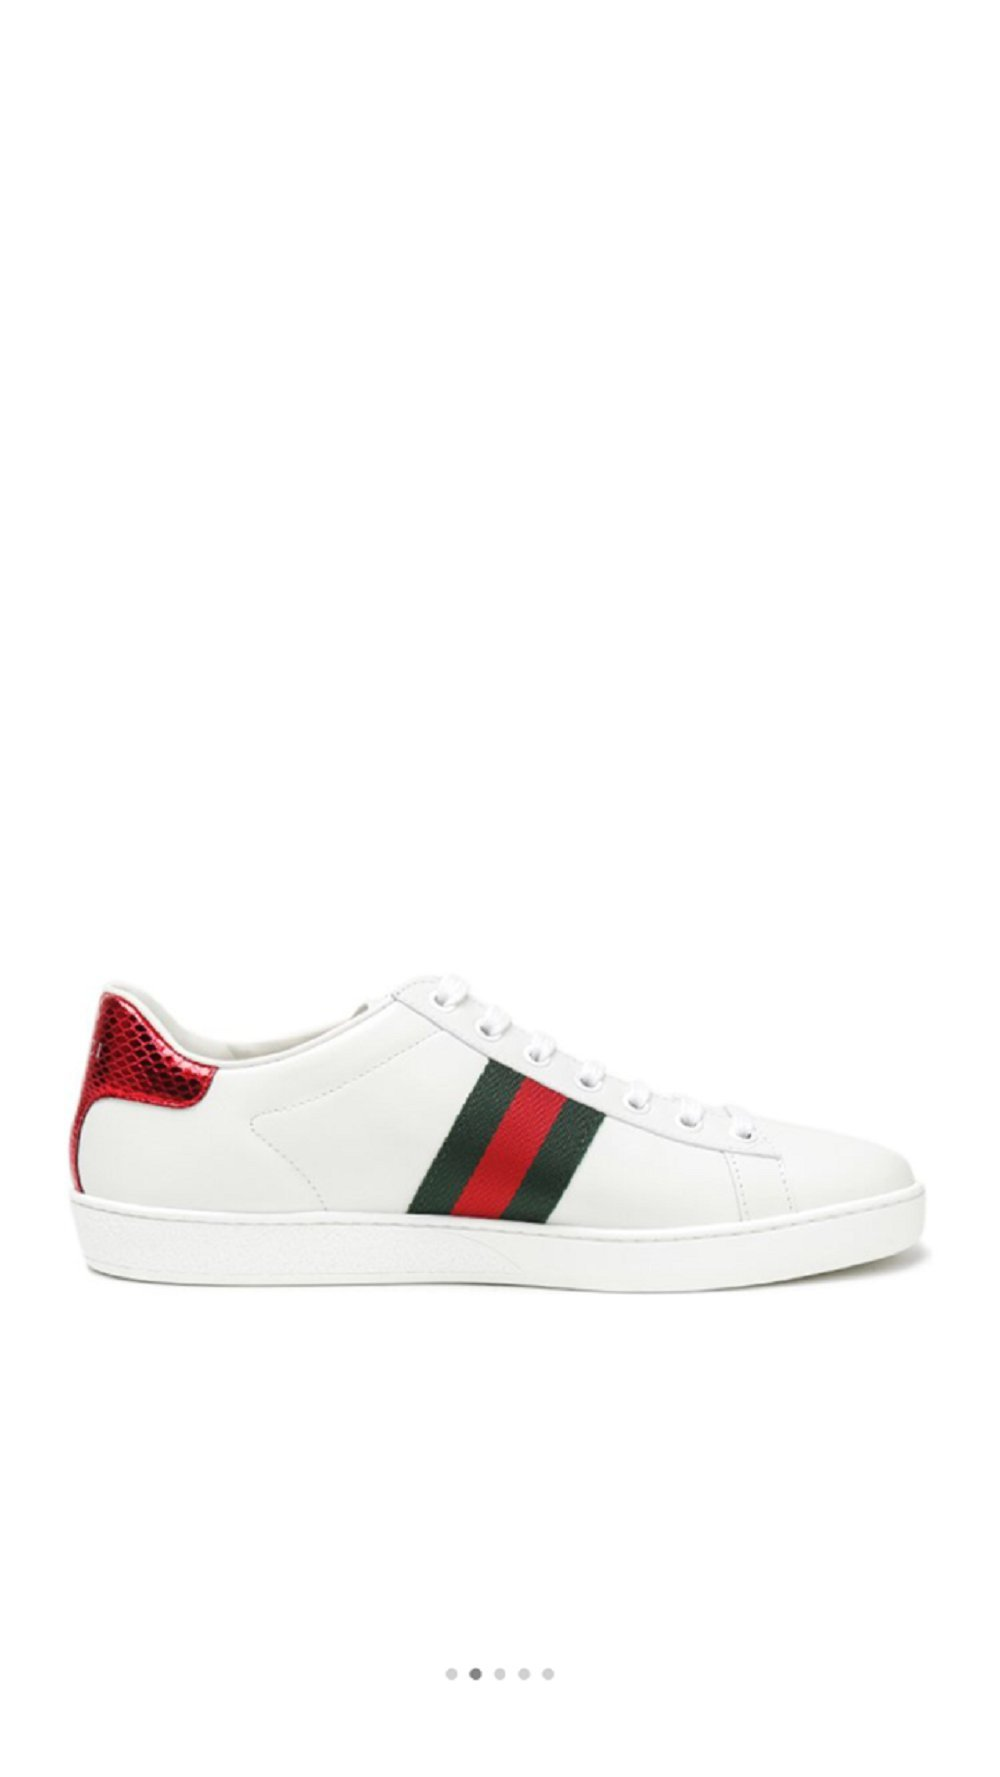 dc205456a Simple-Gucci New Style Women's Shoes Leather Embroidery Small Bee ...